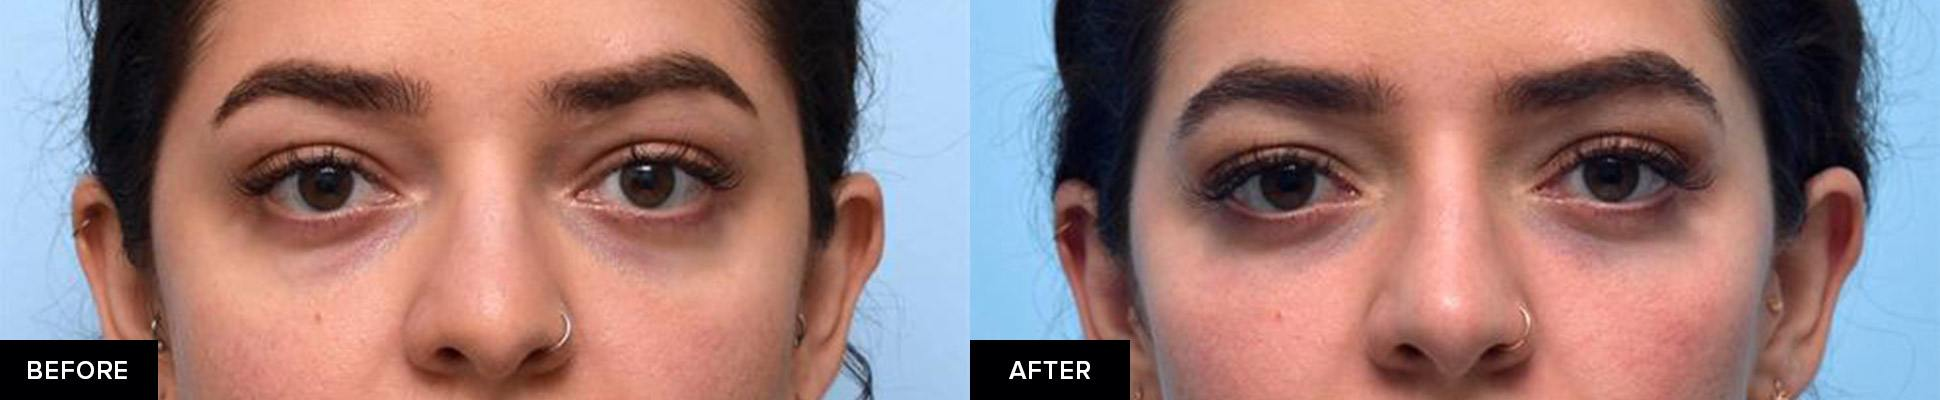 Restylane dermal filler in tear troughs before and after